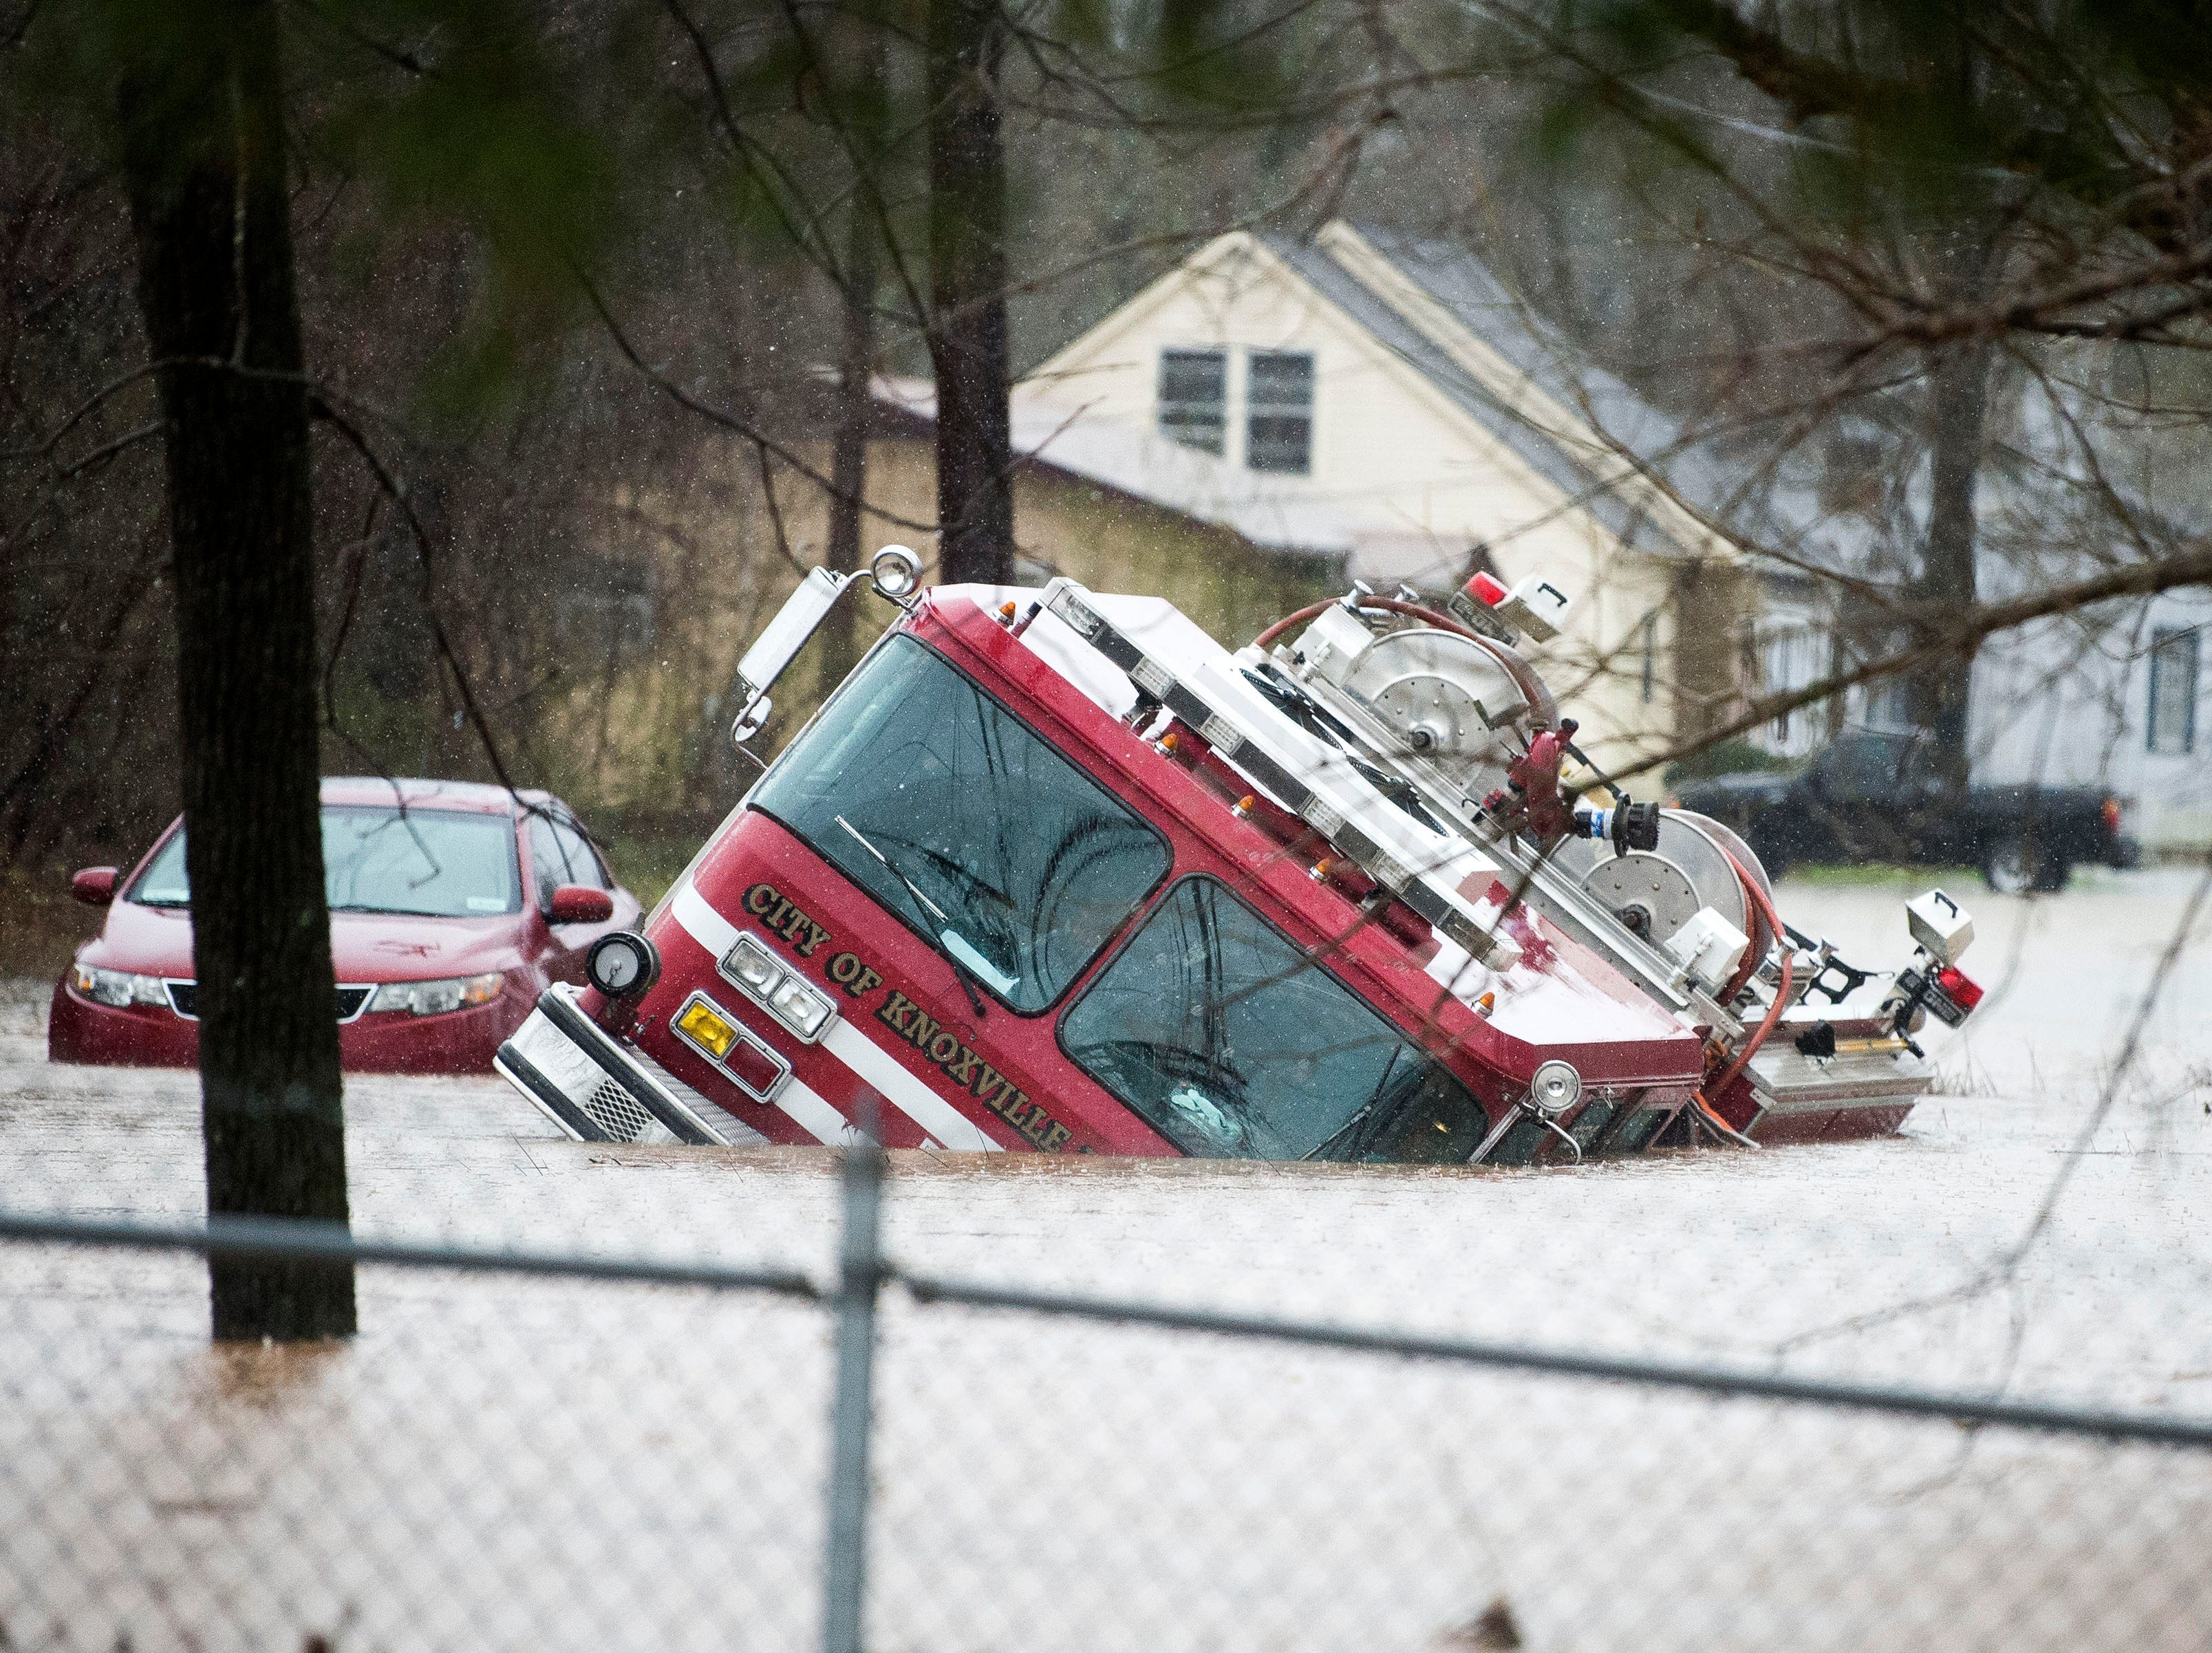 A Knoxville firetruck is overtaken by flood water near the Kroger in Fountain City Saturday, Feb. 23, 2019.